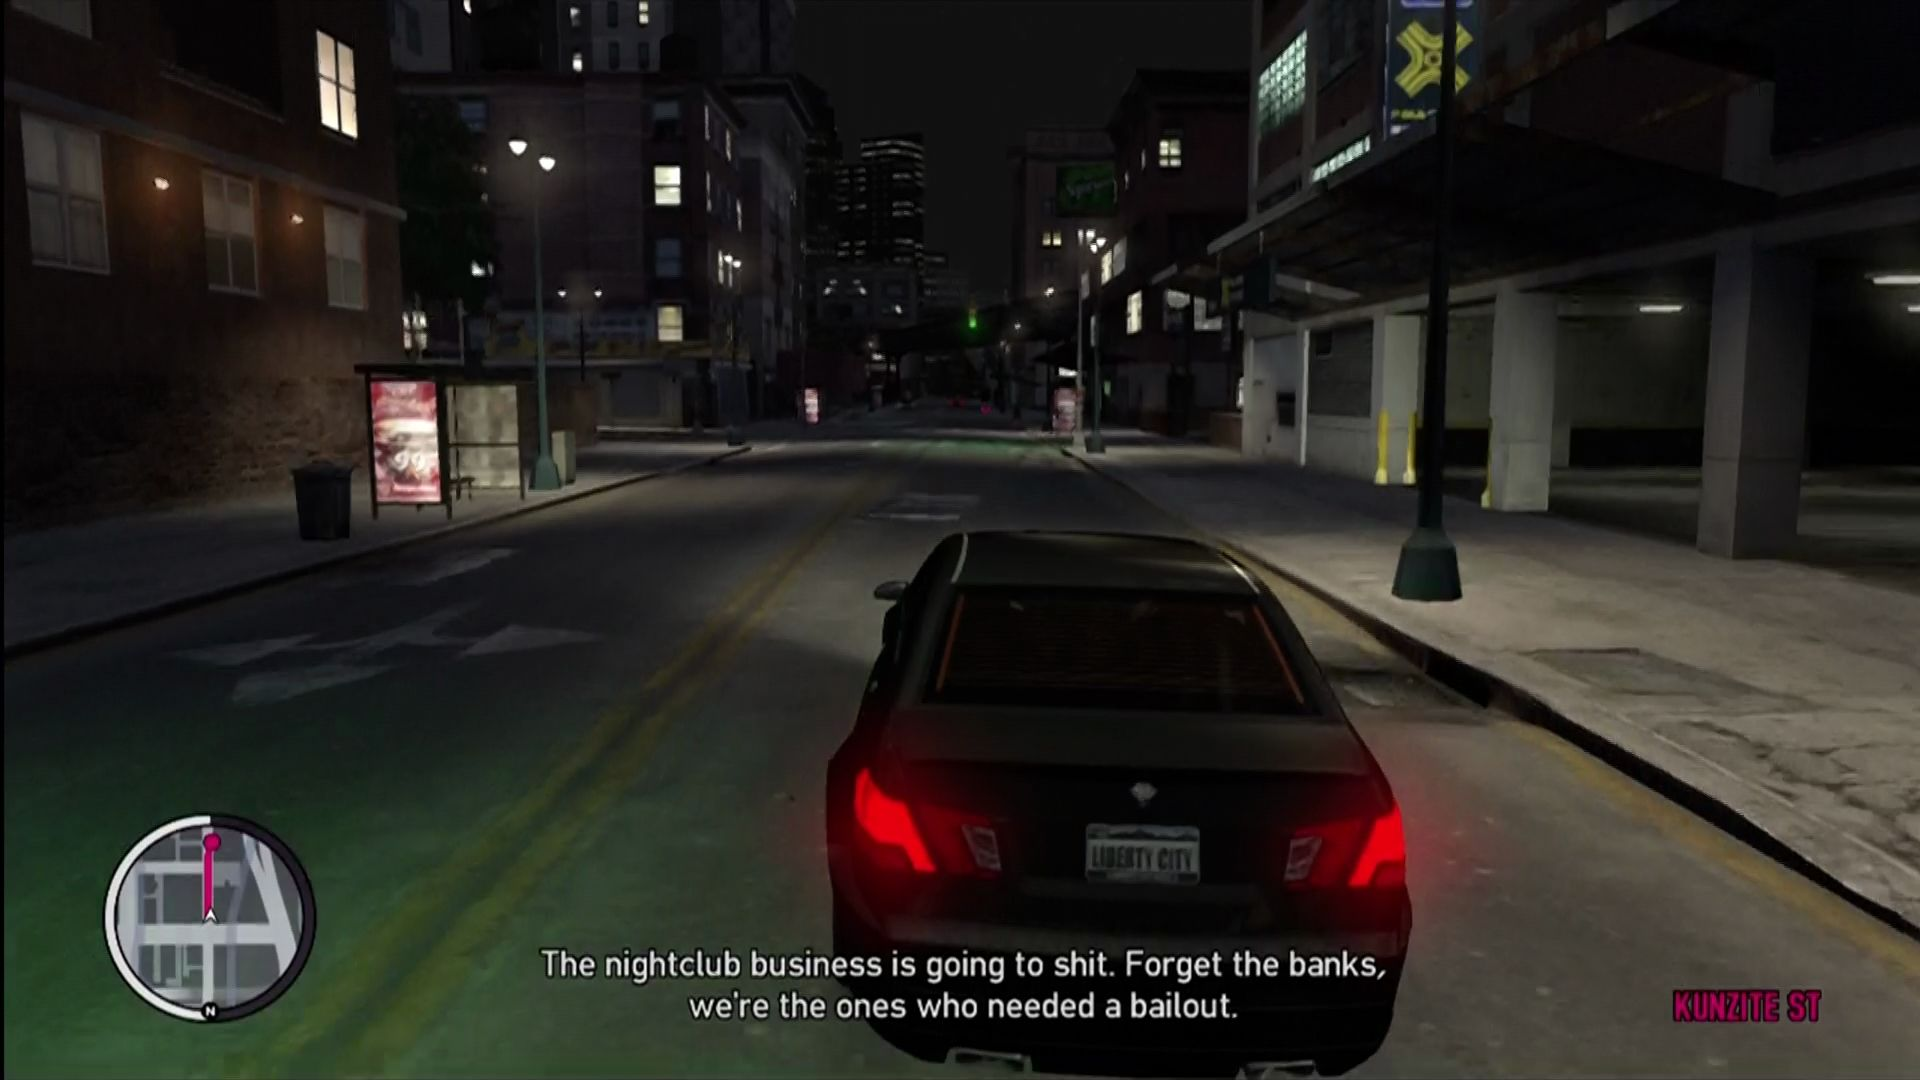 online dating grand theft auto Back in grand theft auto iv, you needed to visit an internet cafe if you wanted to online inside the game but with the release of grand theft auto v, yo - page 2 of 12.